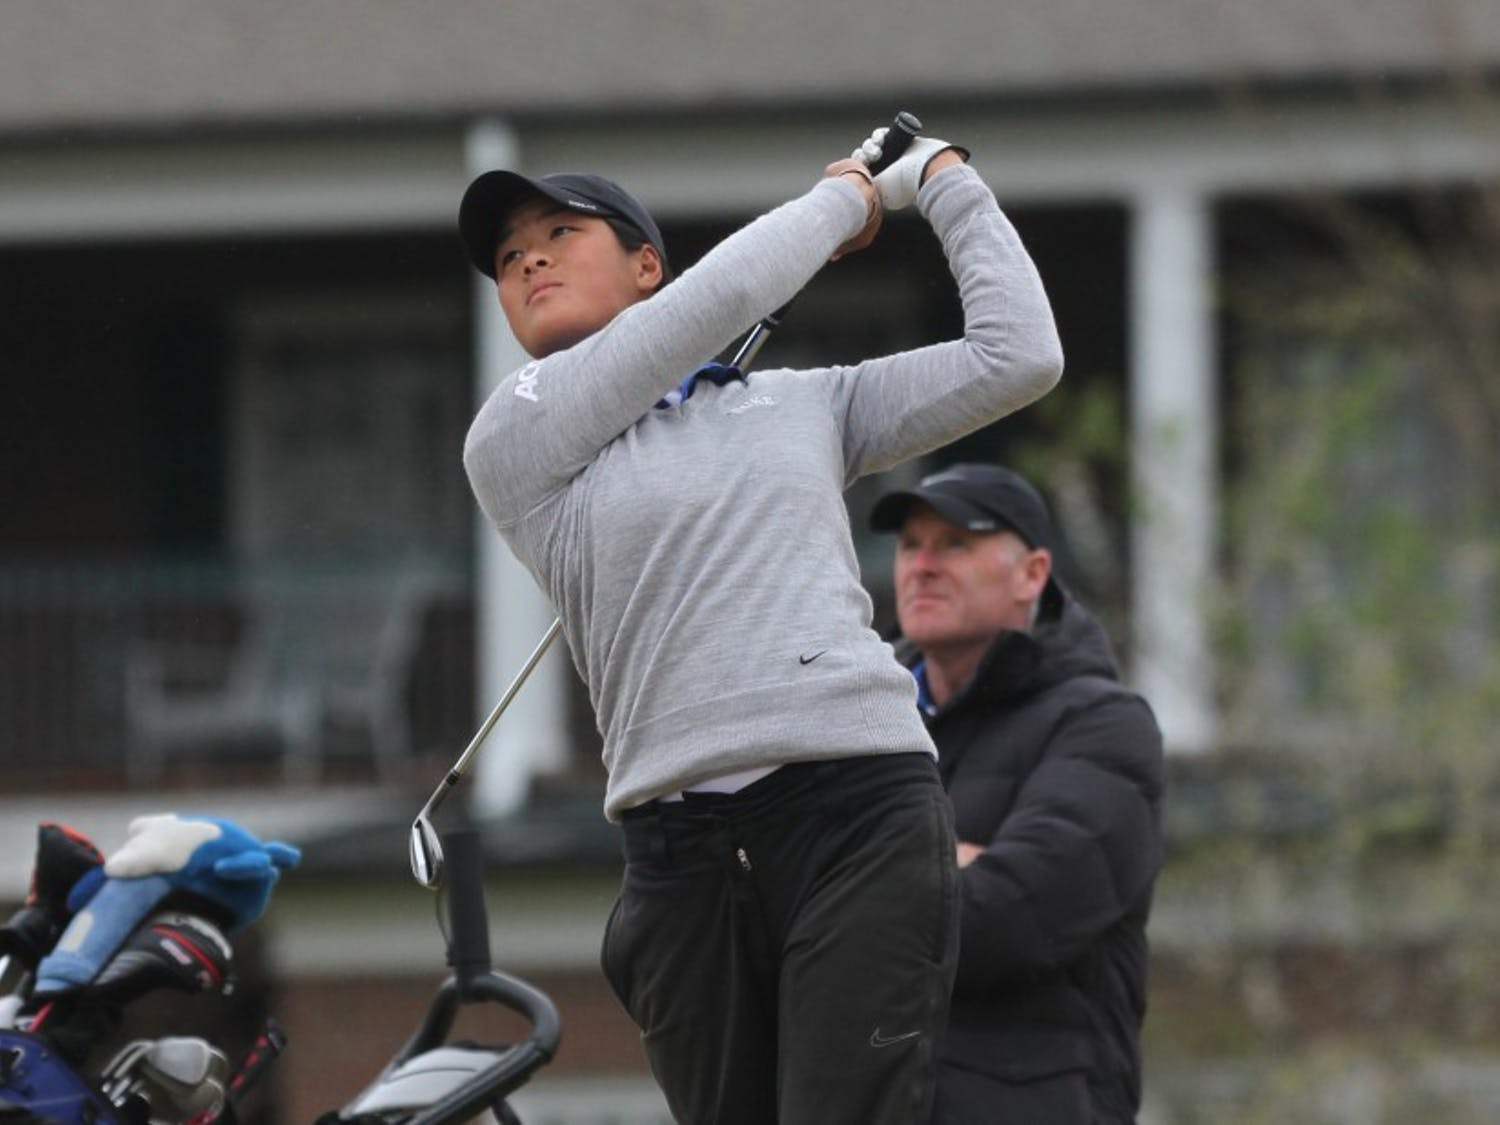 Sophomore Celine Boutier saw her three-tournament winning streak come to an end, but the Blue Devils still qualified for the NCAA Championship May 20-23 in Tulsa, Okla.